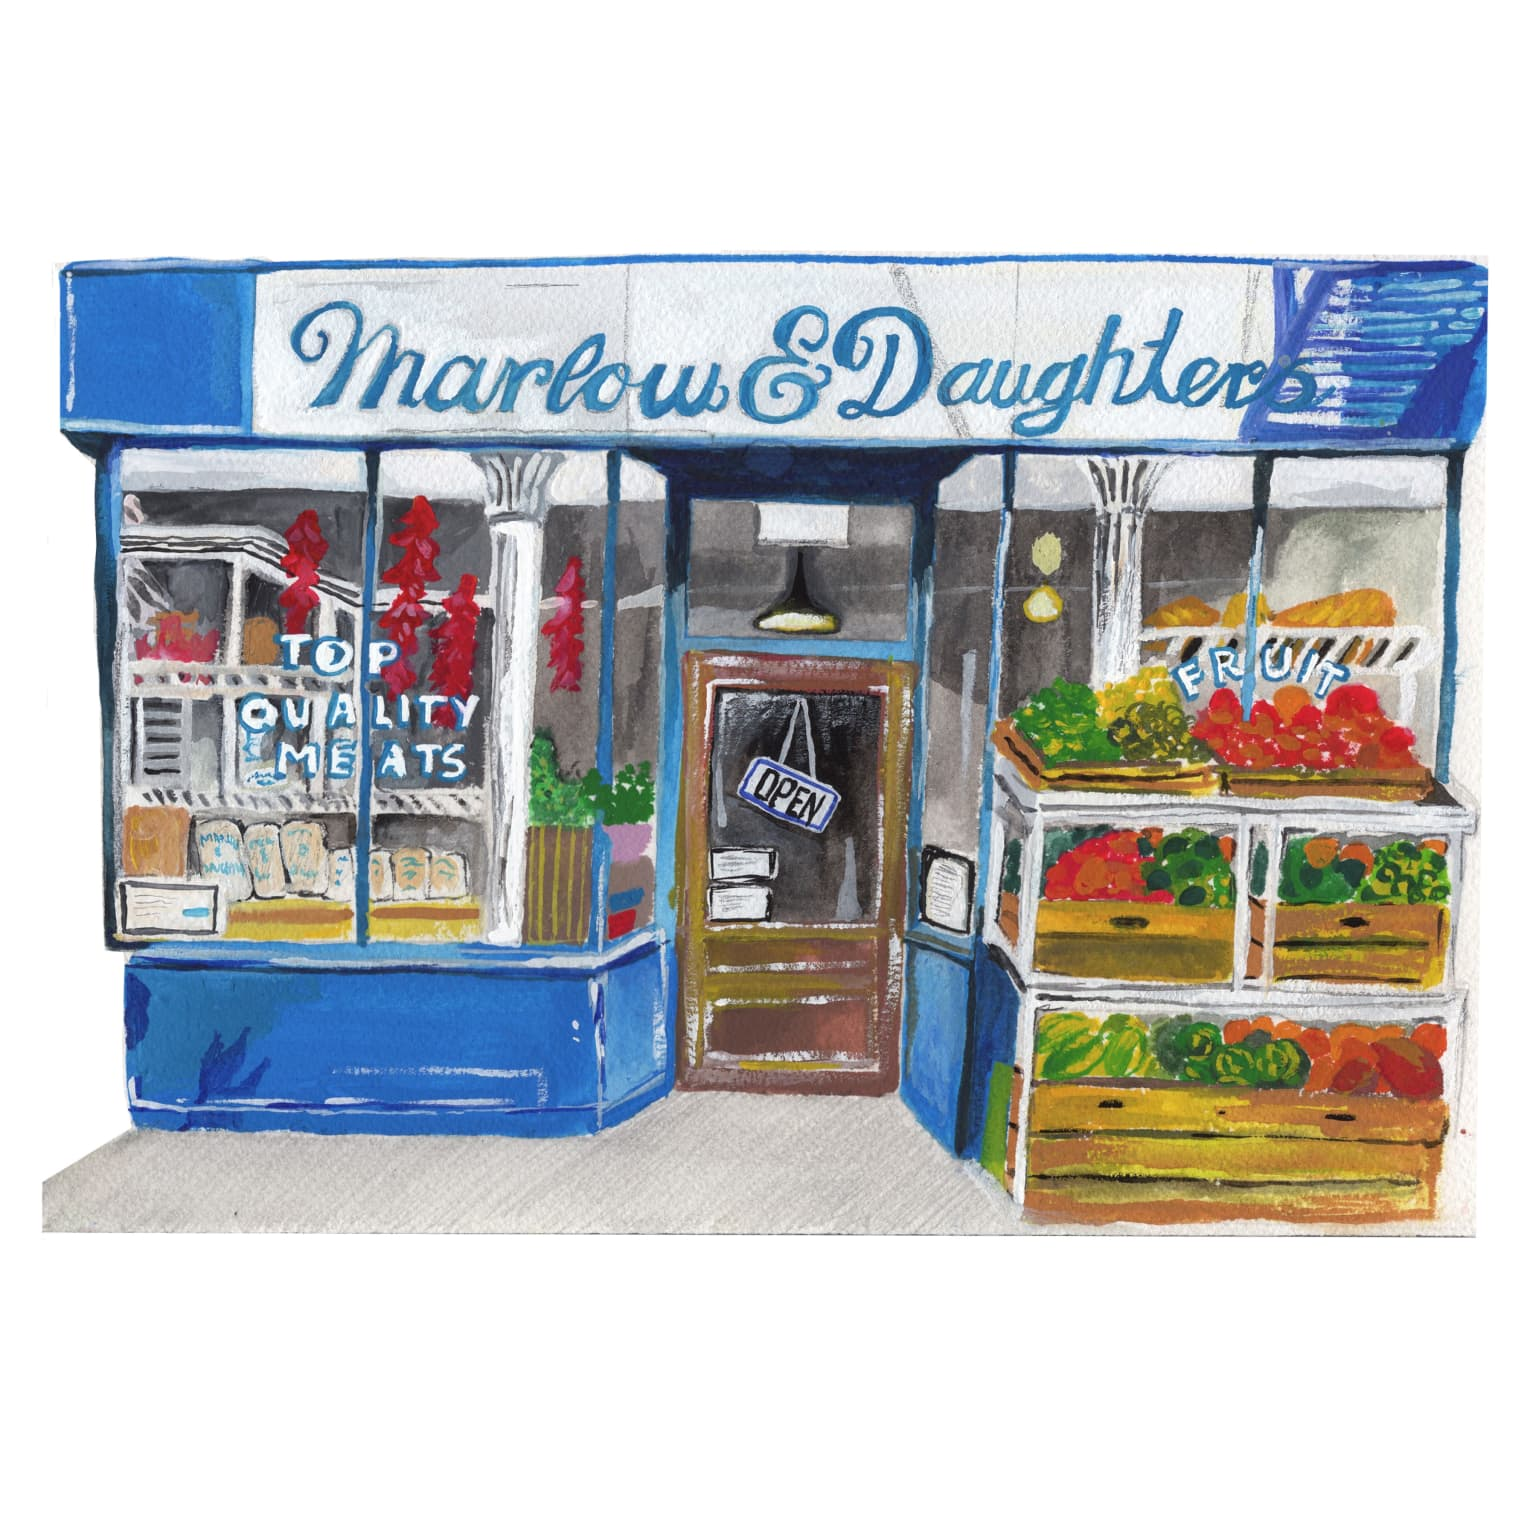 Marlow & Daughters Storefront